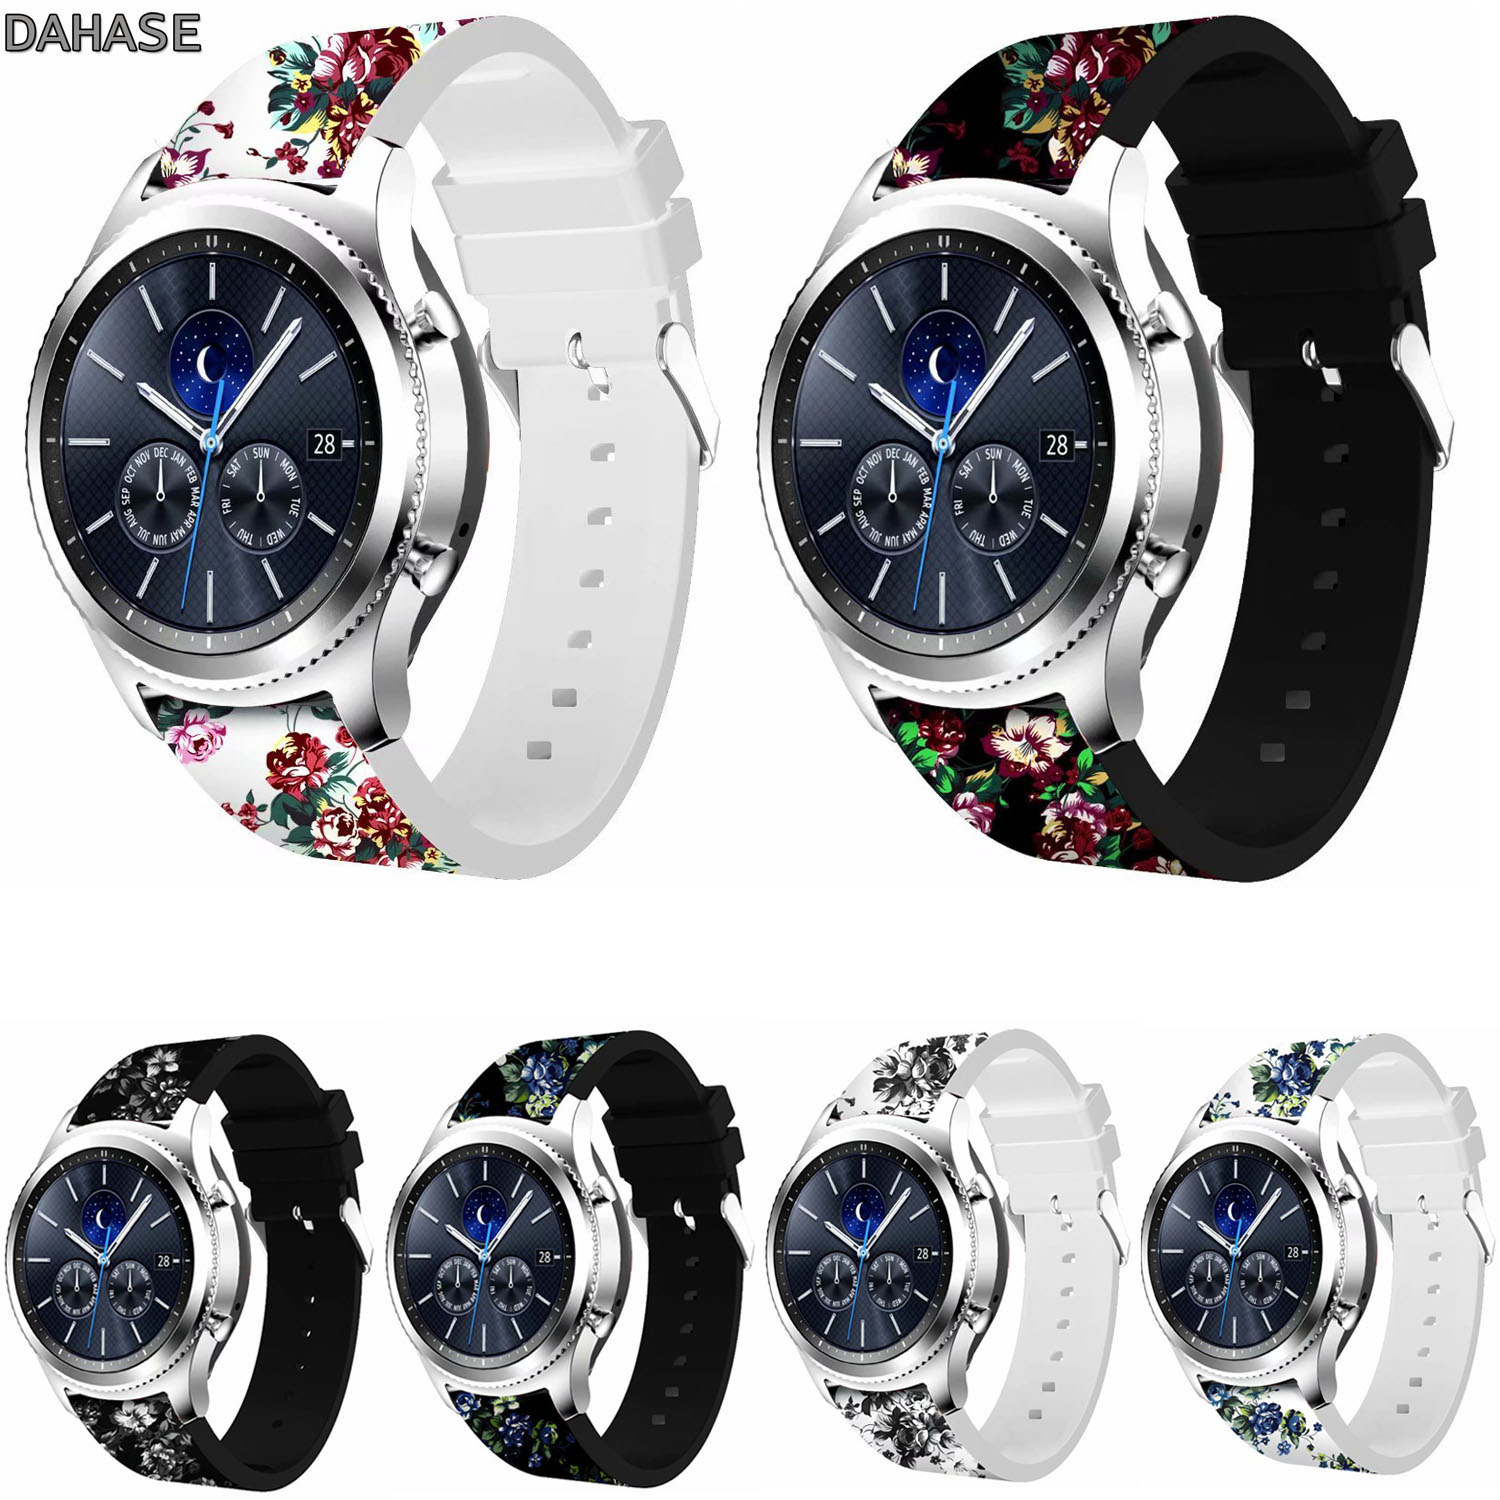 22mm Floral Silicone Watch Strap for Samsung Gear S3 Classic S3 Frontier Band Bracelet for Samsung Galaxy Watch 46mm Strap22mm Floral Silicone Watch Strap for Samsung Gear S3 Classic S3 Frontier Band Bracelet for Samsung Galaxy Watch 46mm Strap